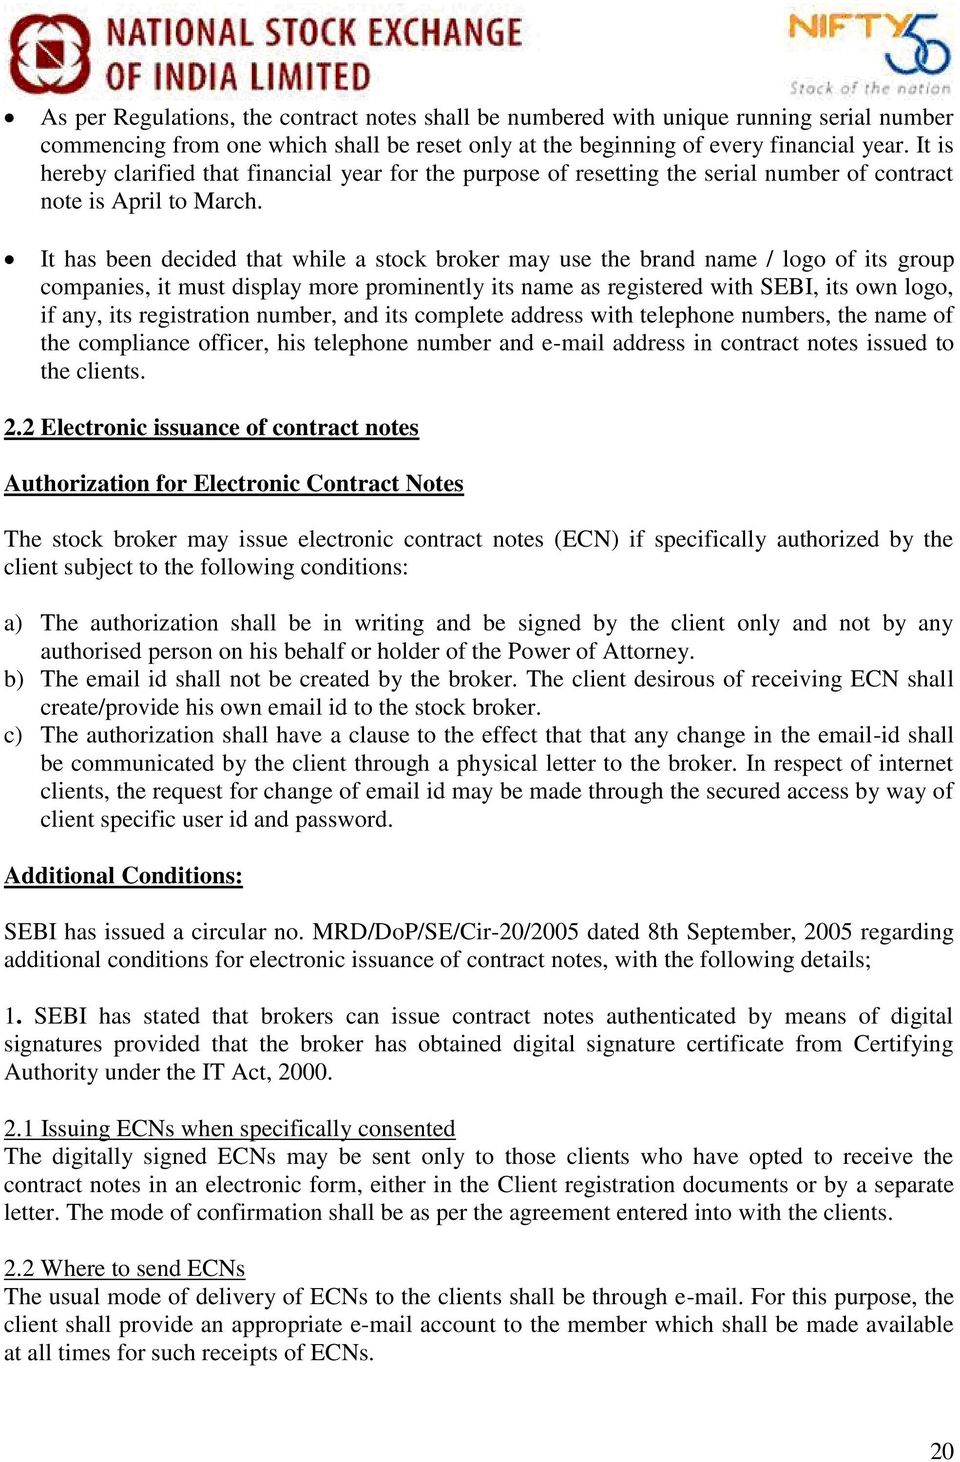 PART-B UPDATED CONSOLIDATED CIRCULAR - PDF